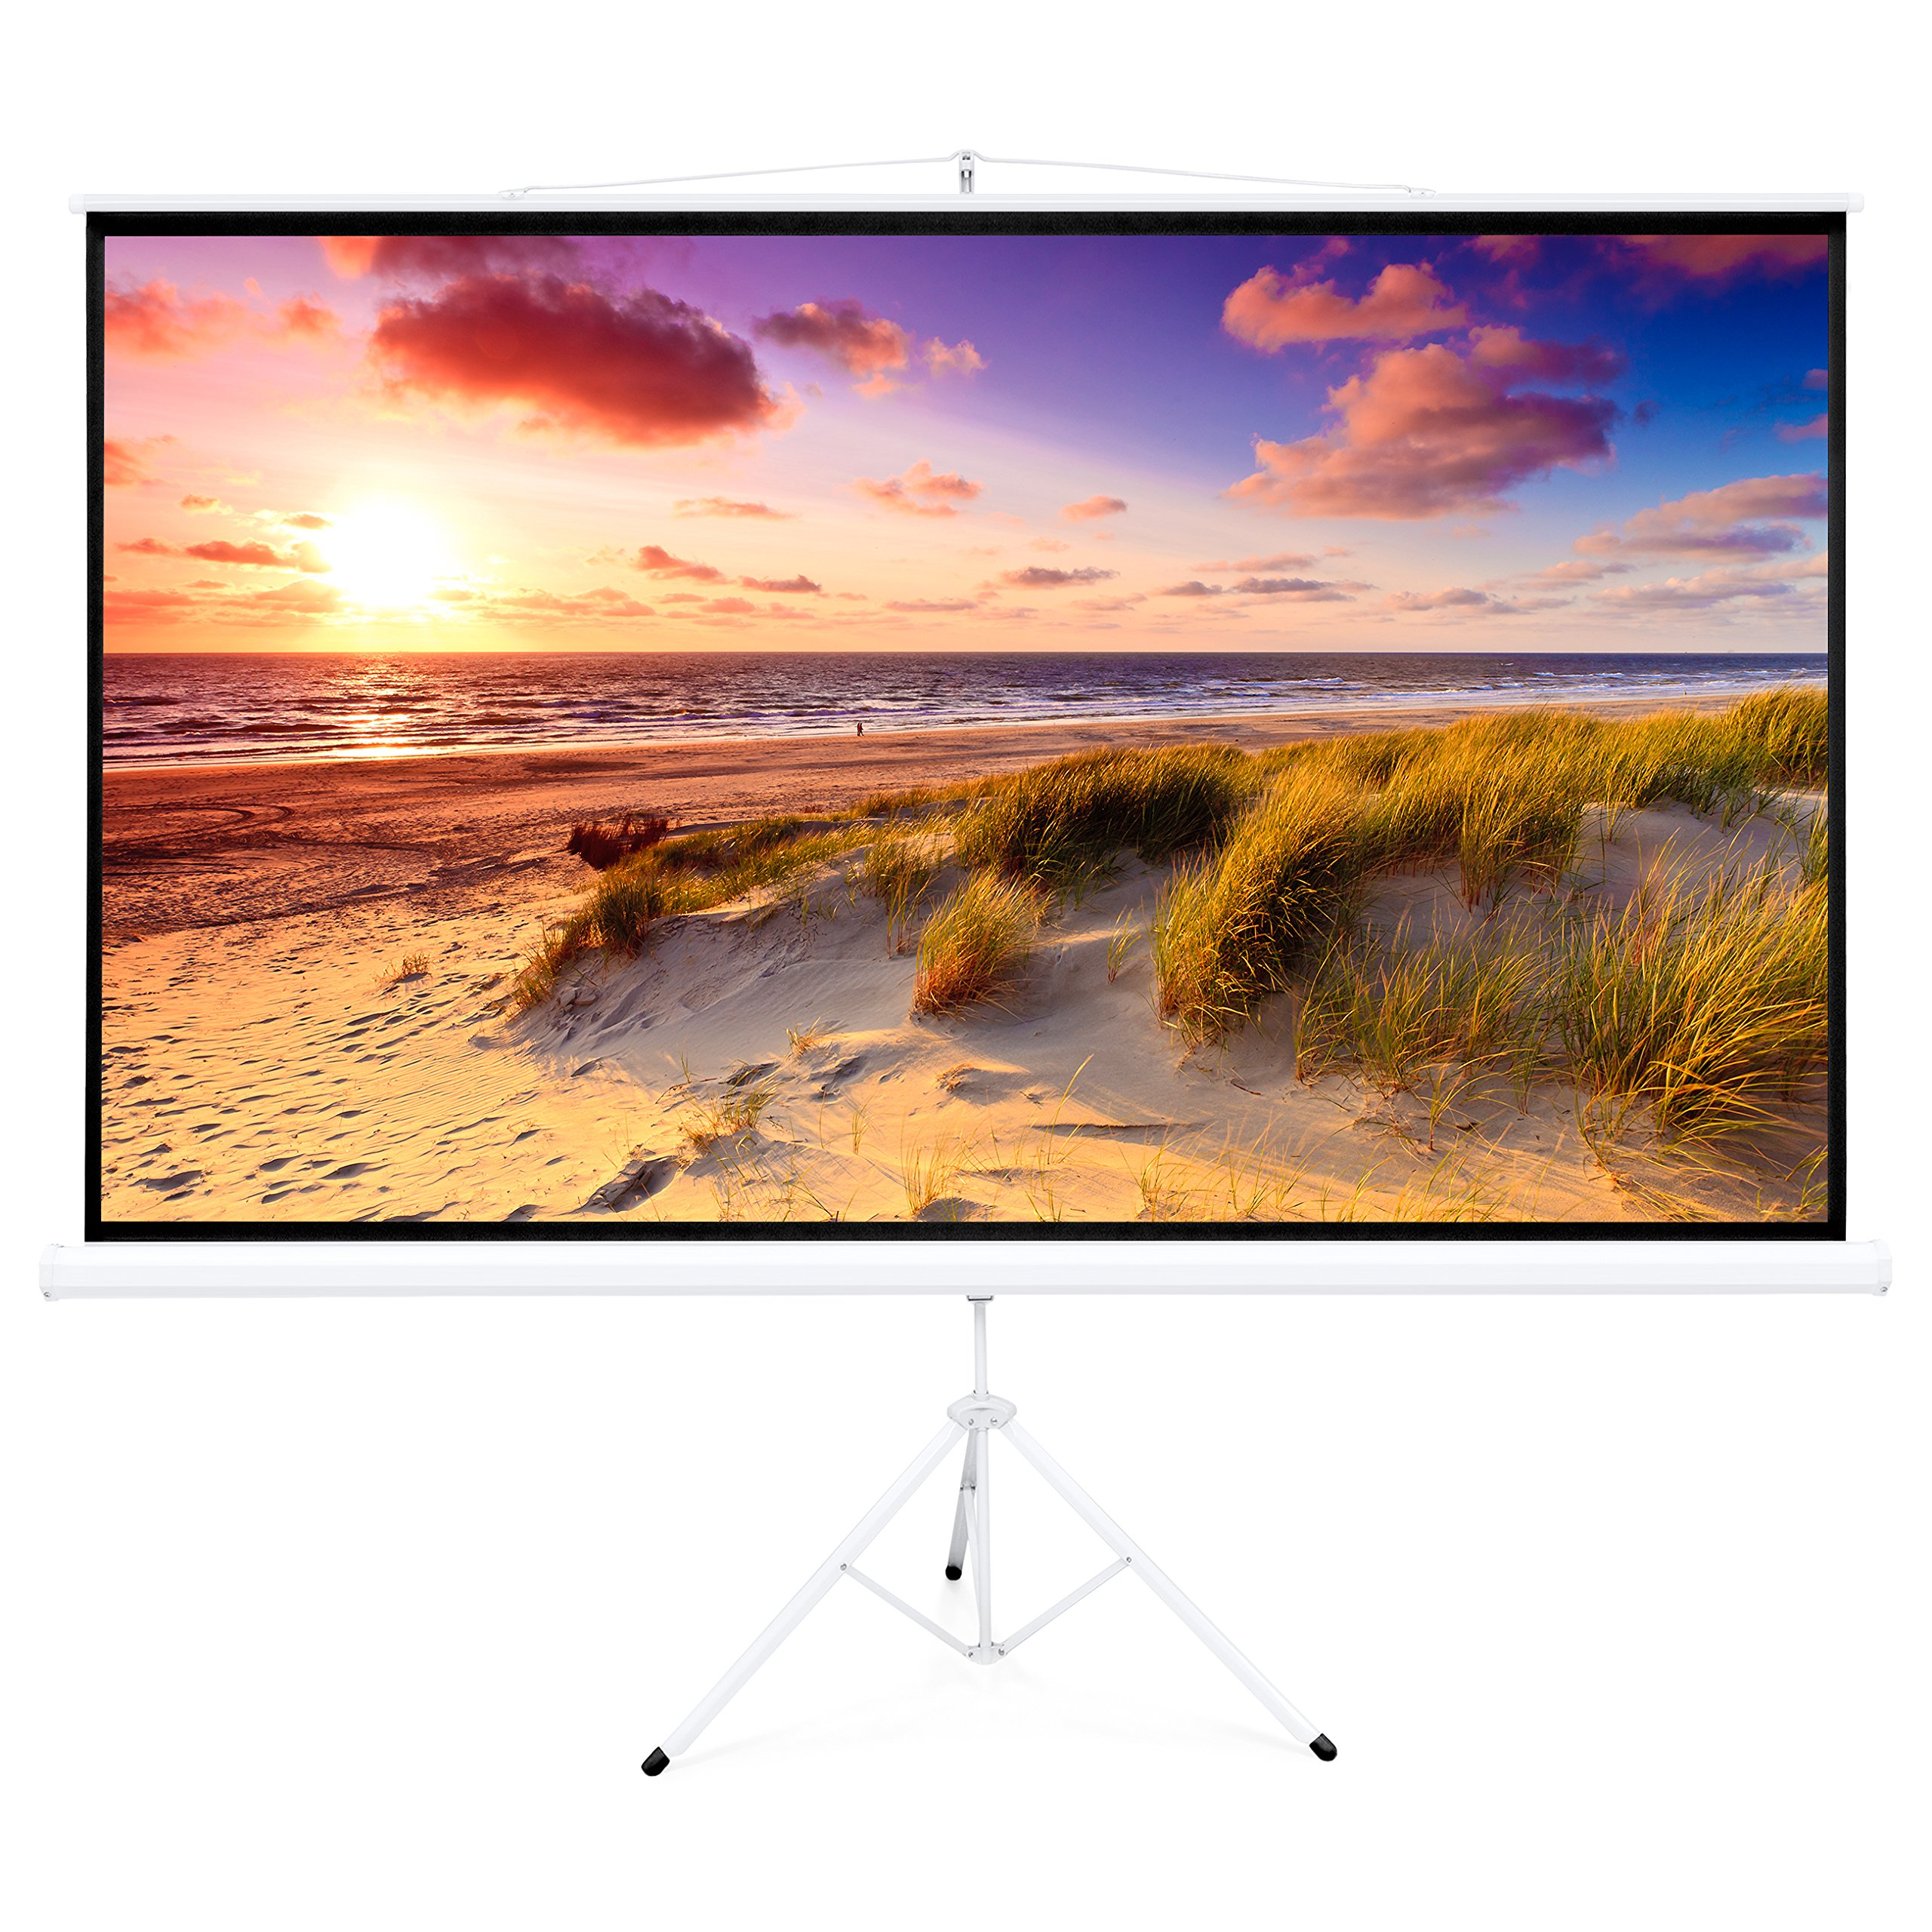 Best Choice Products 100in Portable 16:9 Projection Screen w/87x49in Foldable Stand, 1.3 Gain - White by Best Choice Products